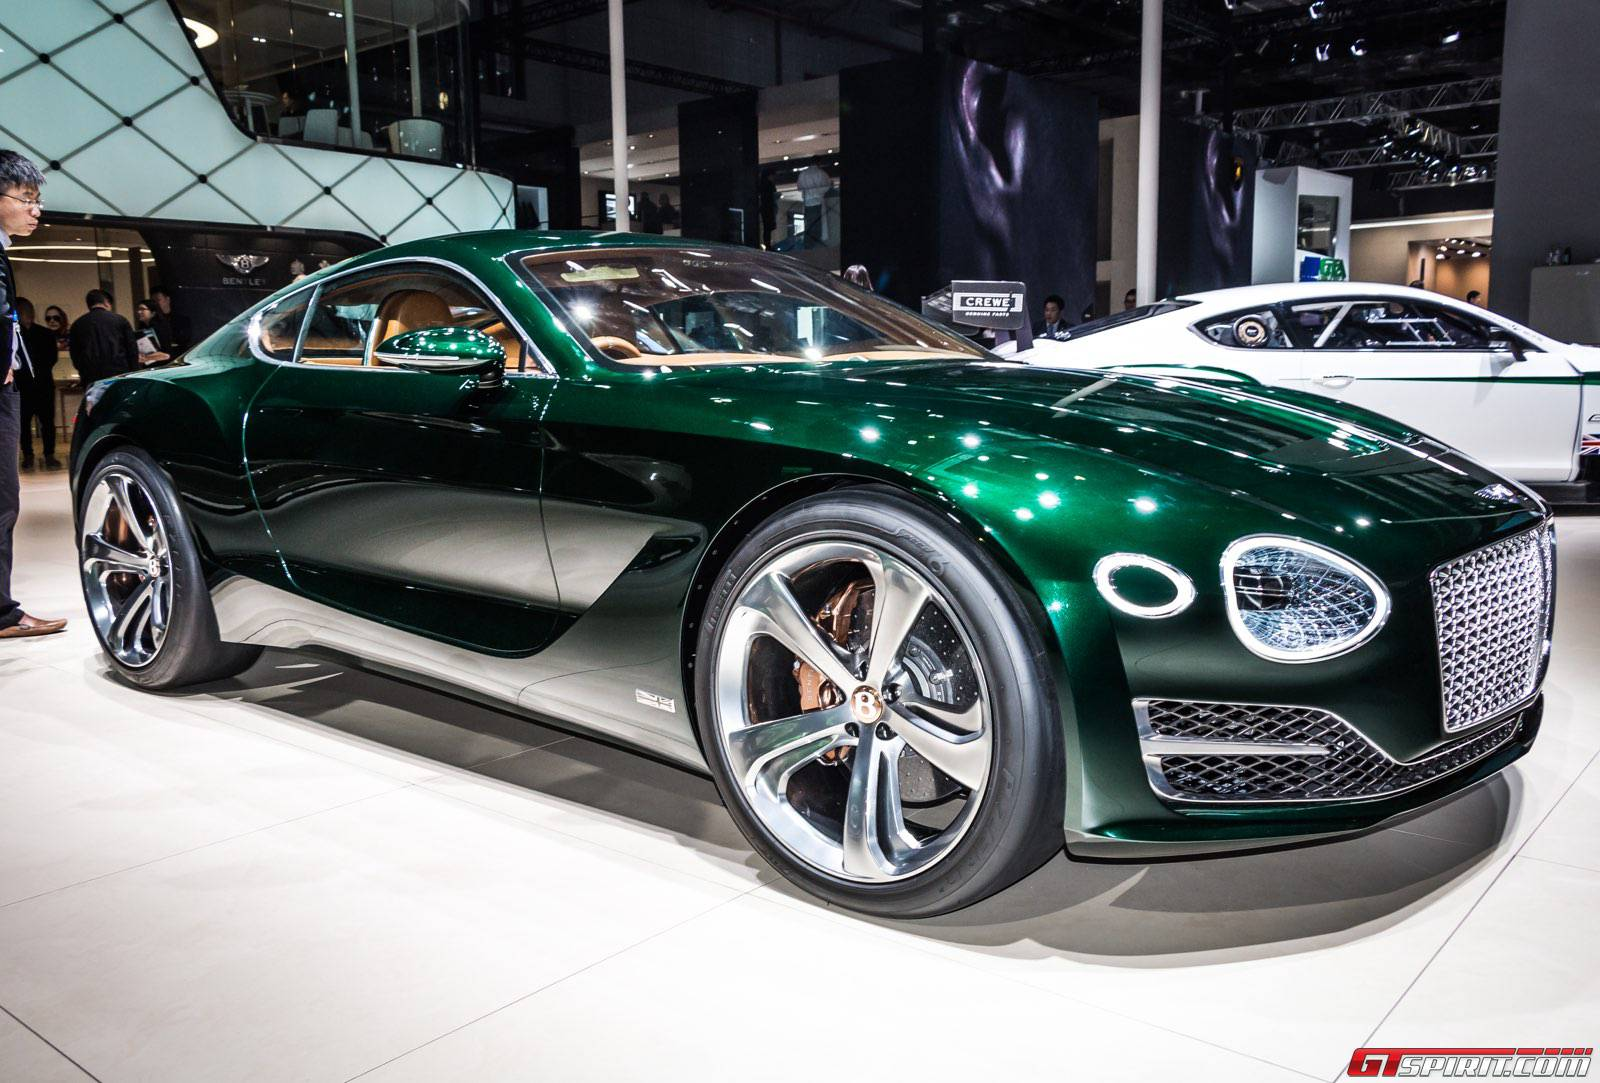 Shanghai 2015 bentley exp10 speed 6 concept gtspirit - Shanghai auto show ...